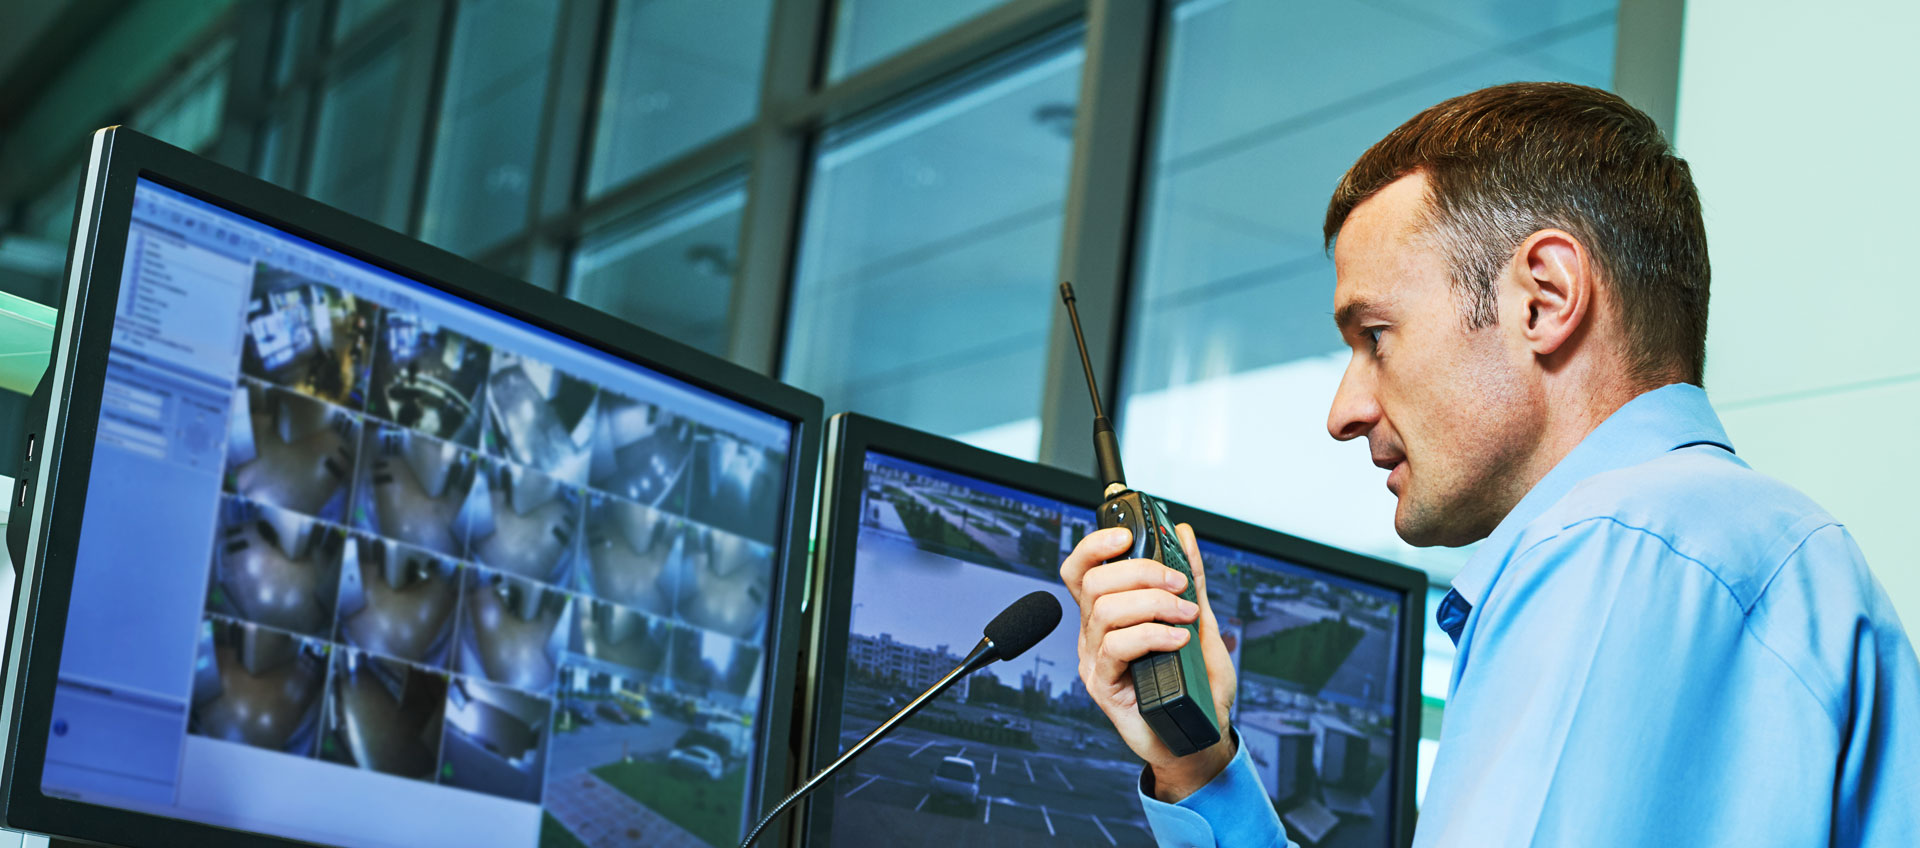 Photo of middle-age security officer using two-way radio